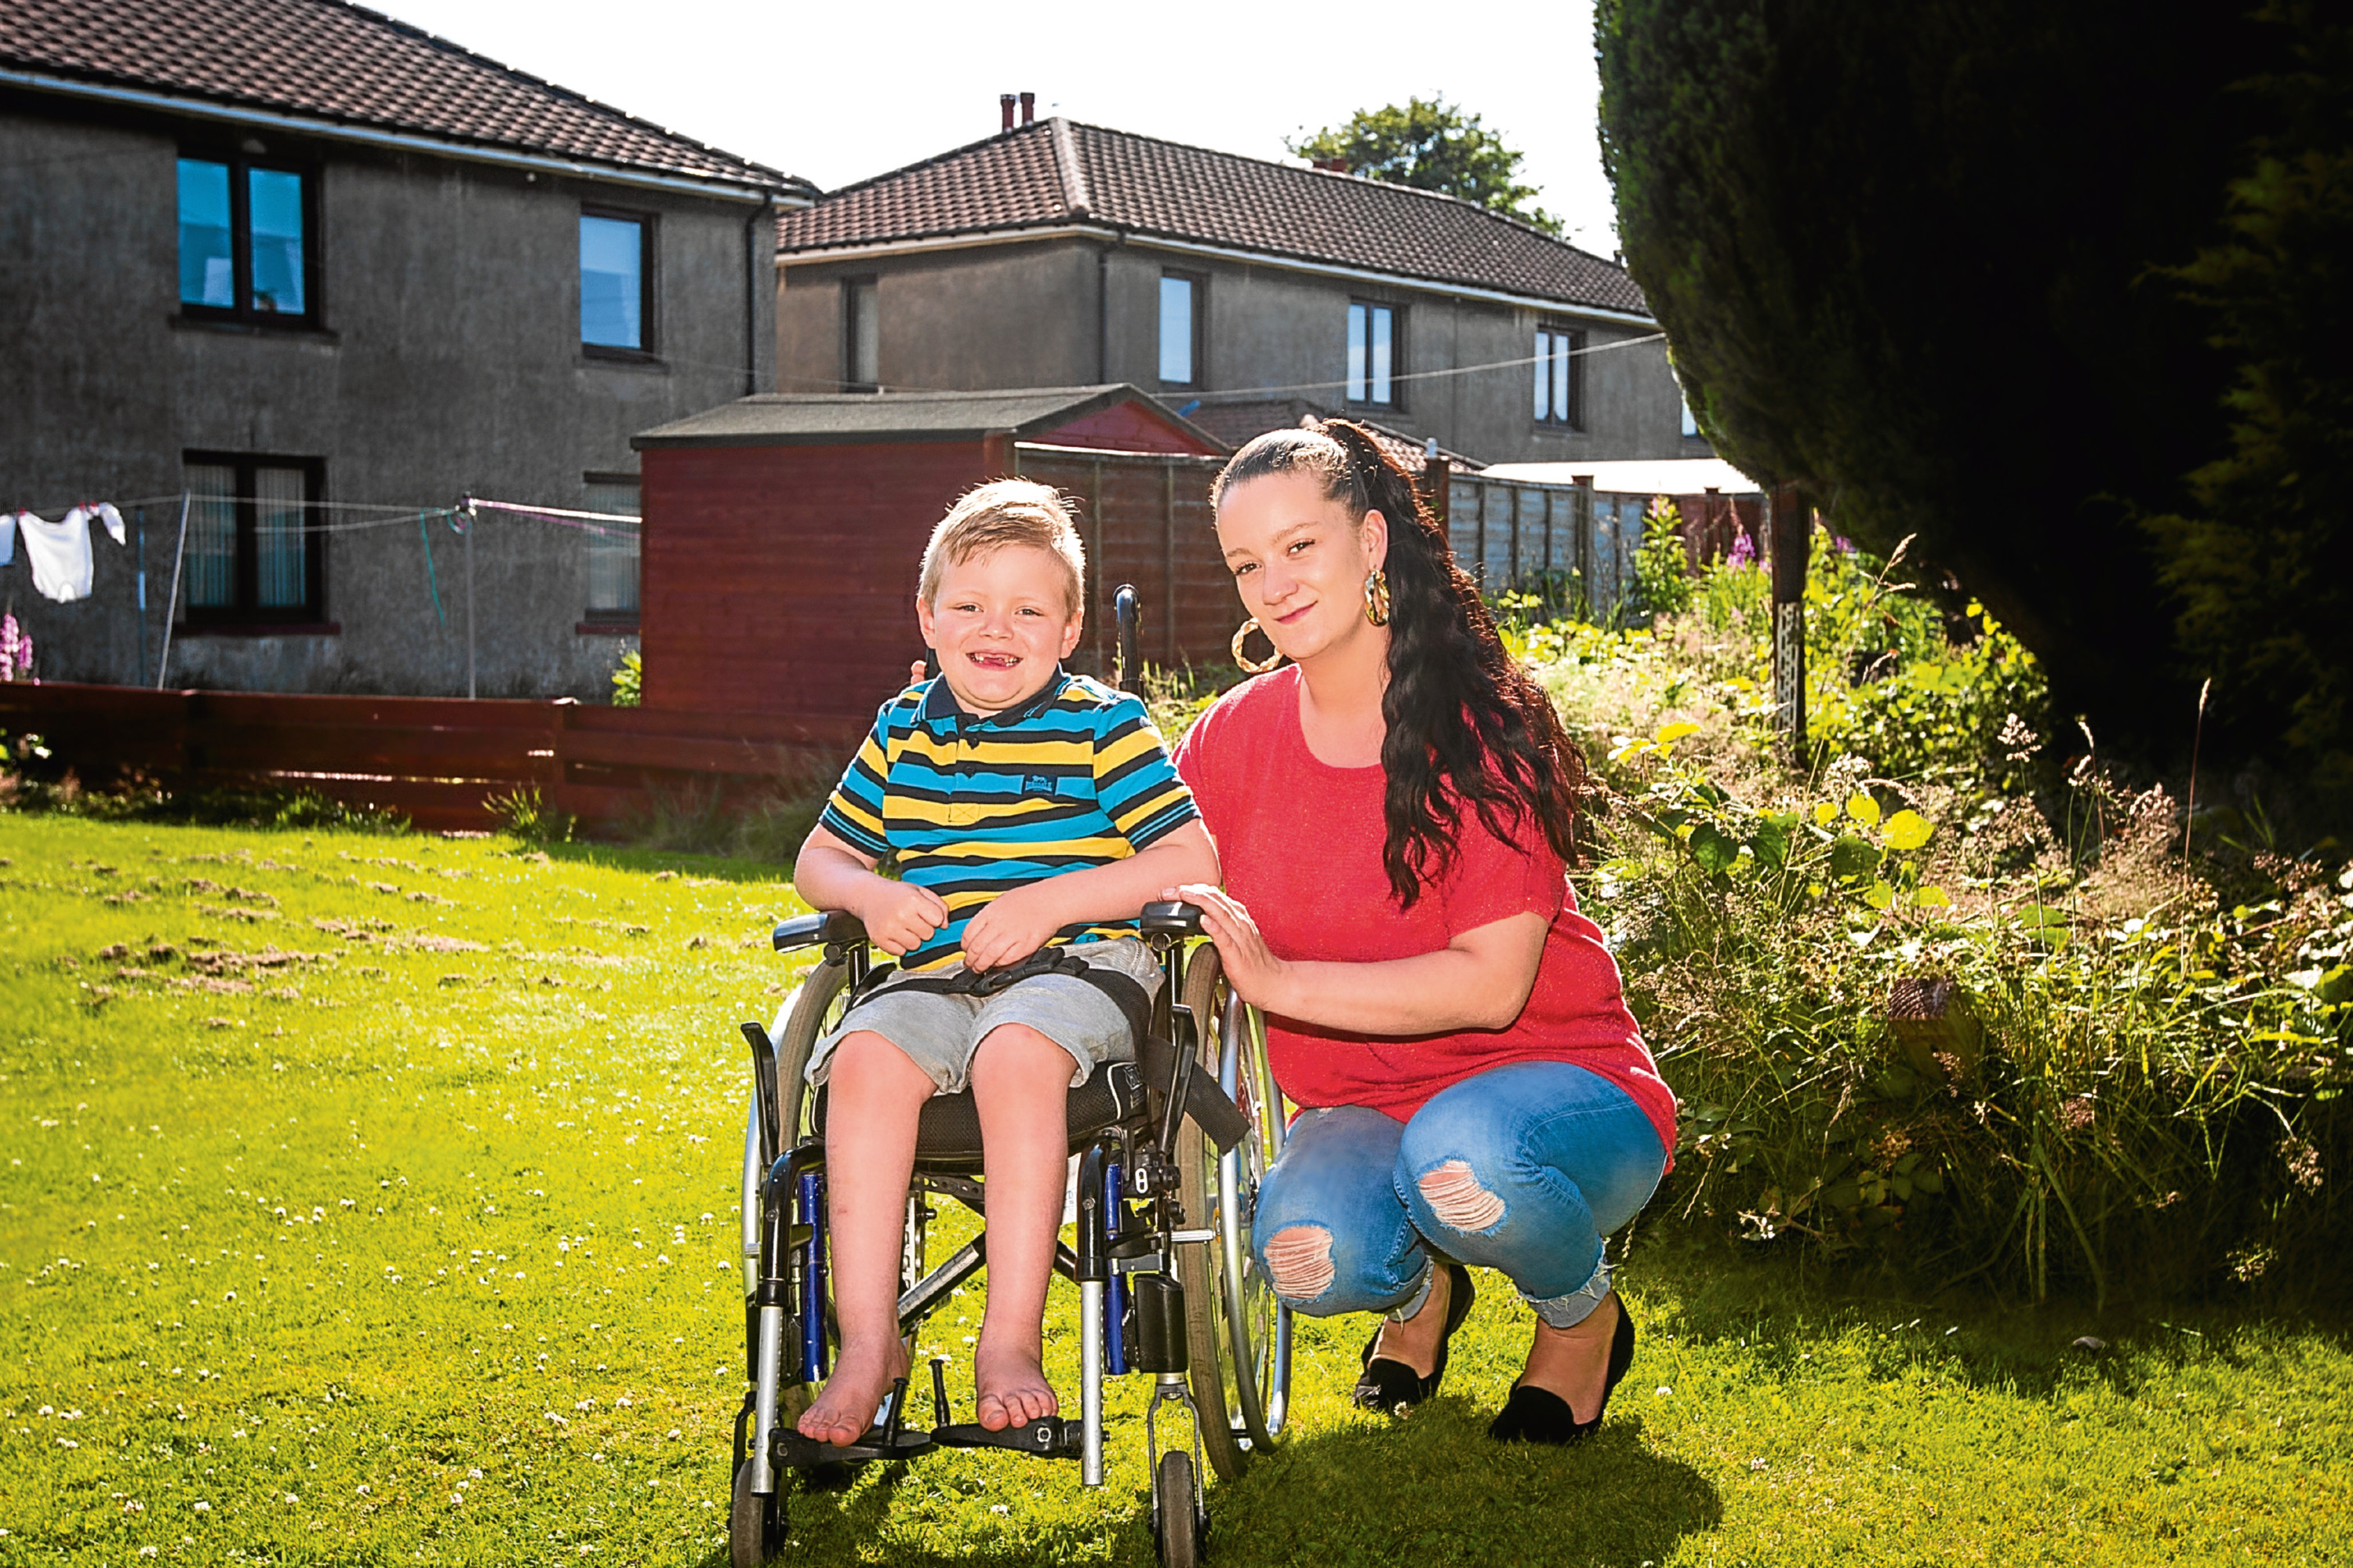 Six-year-old Kayden Maynard-Scott pictured with his mother Jacqueline Tollady, who has launched a fundraising bid to cover his annual physio bill.